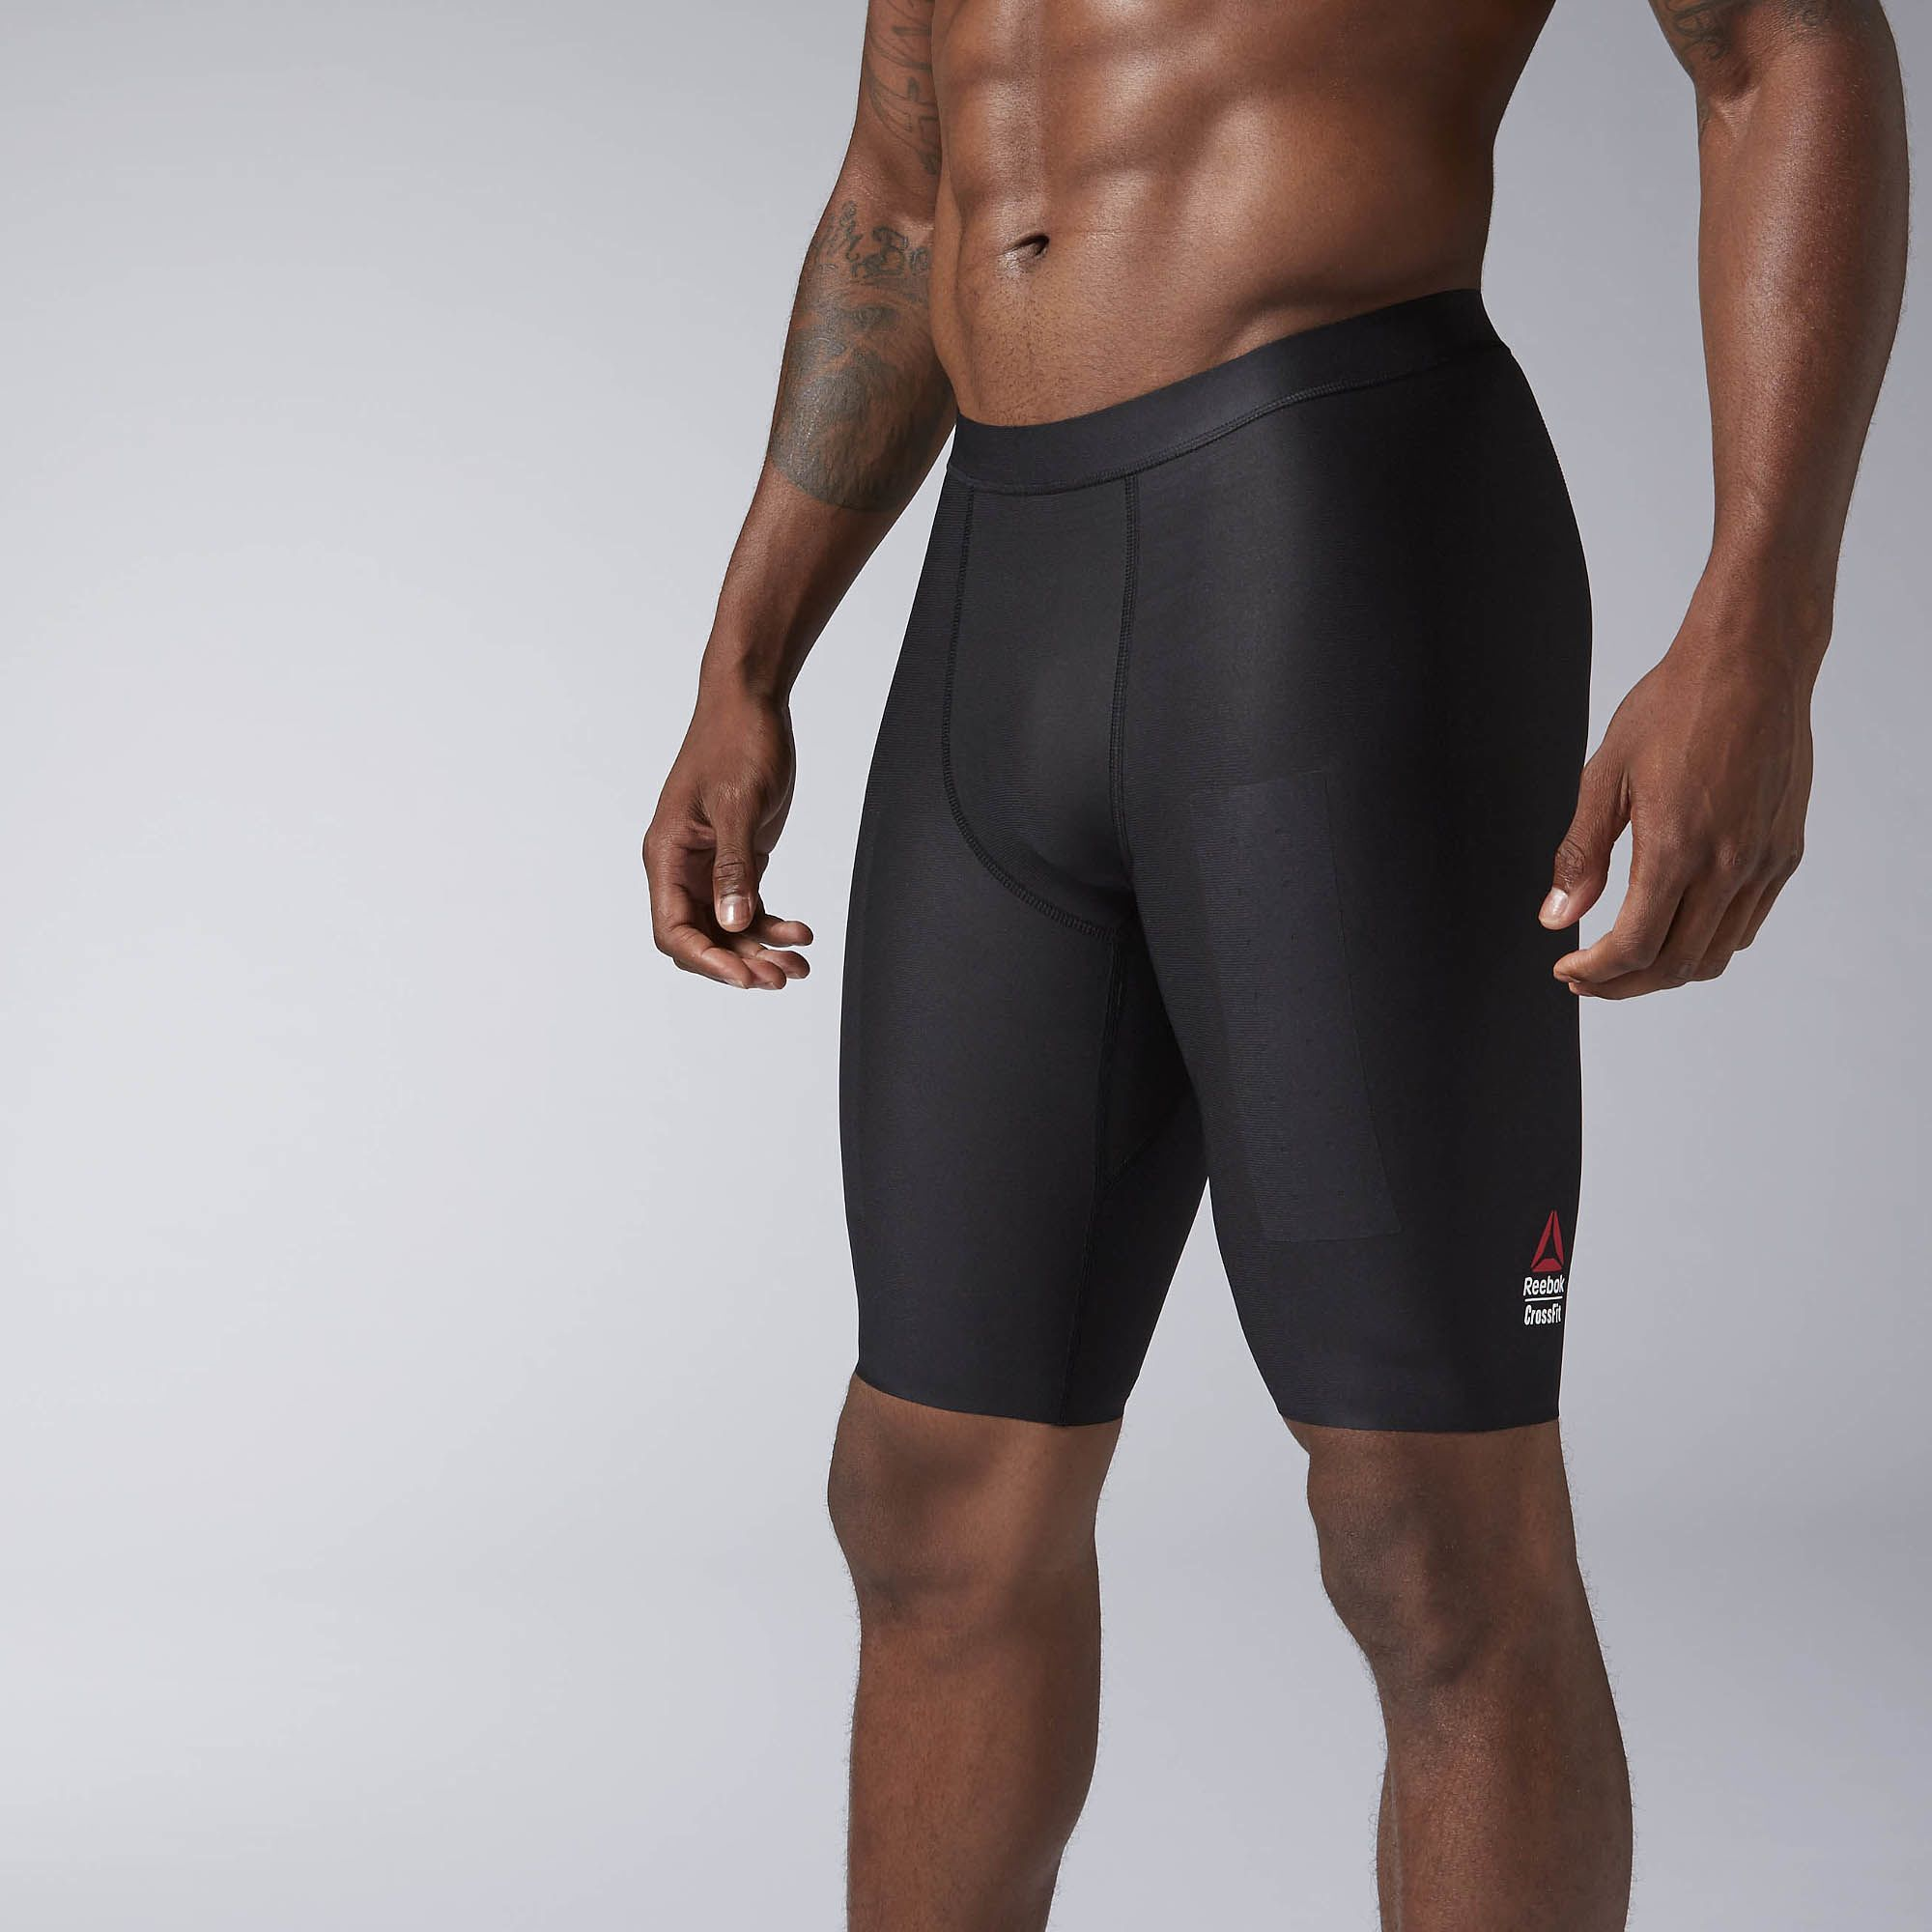 Two types of Compression Shorts  Outerwear and Underwear ... 2a8a7d0f5e44